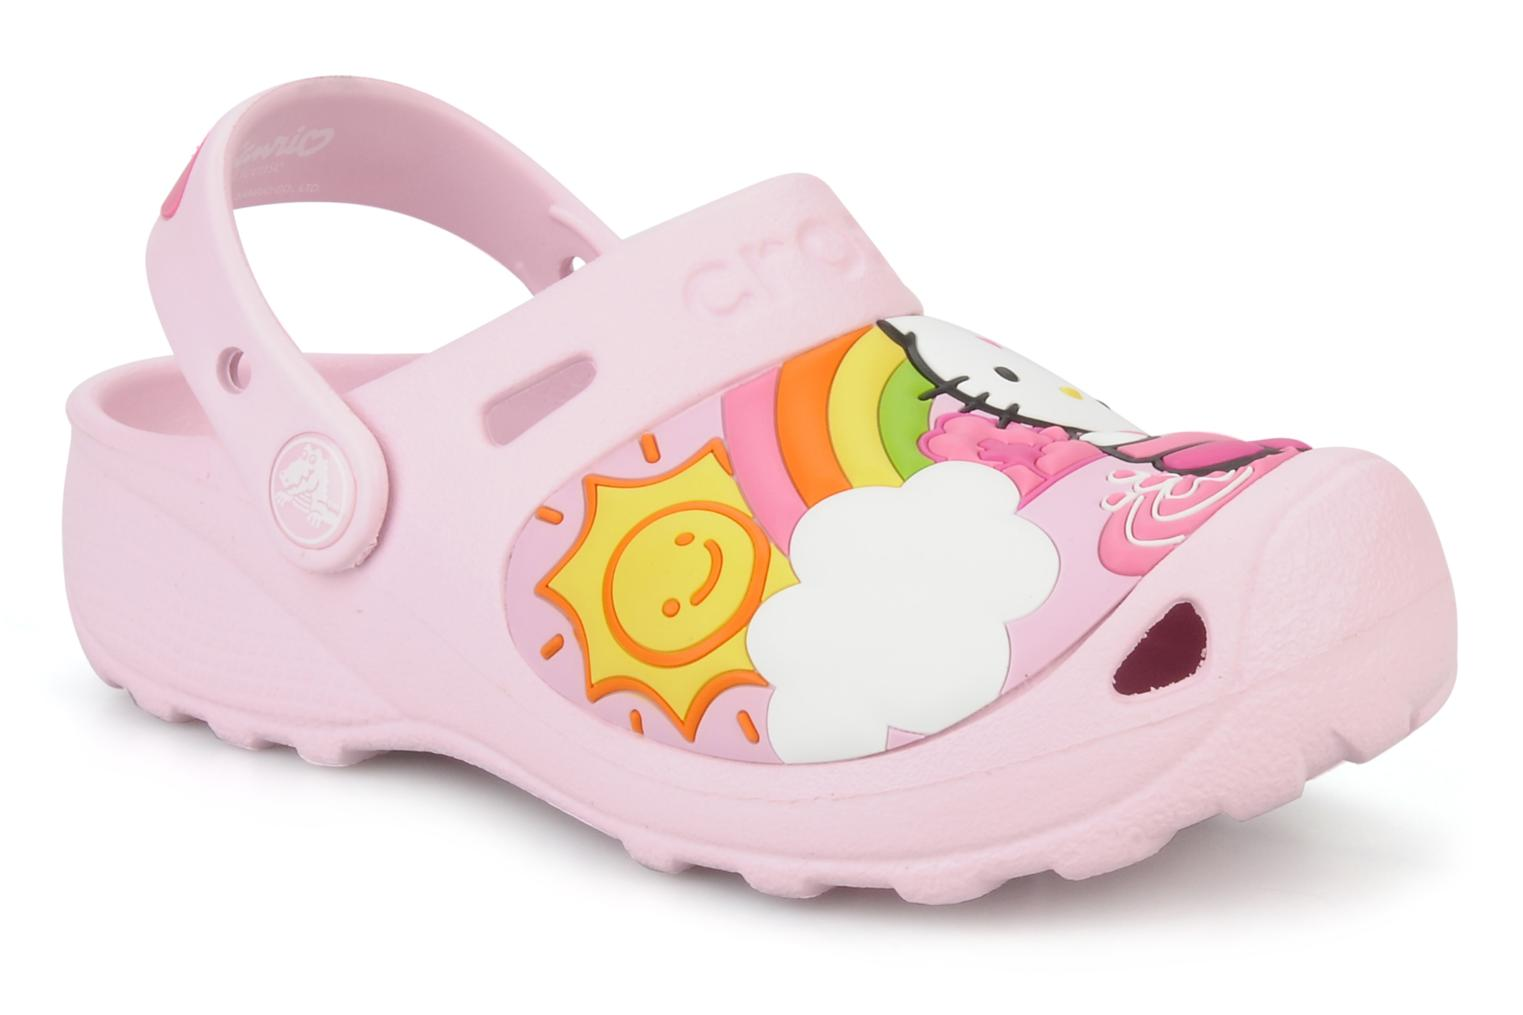 Crocs Hello kitty fun rain or sun custom clog Sandals in Pink at Sarenza co u